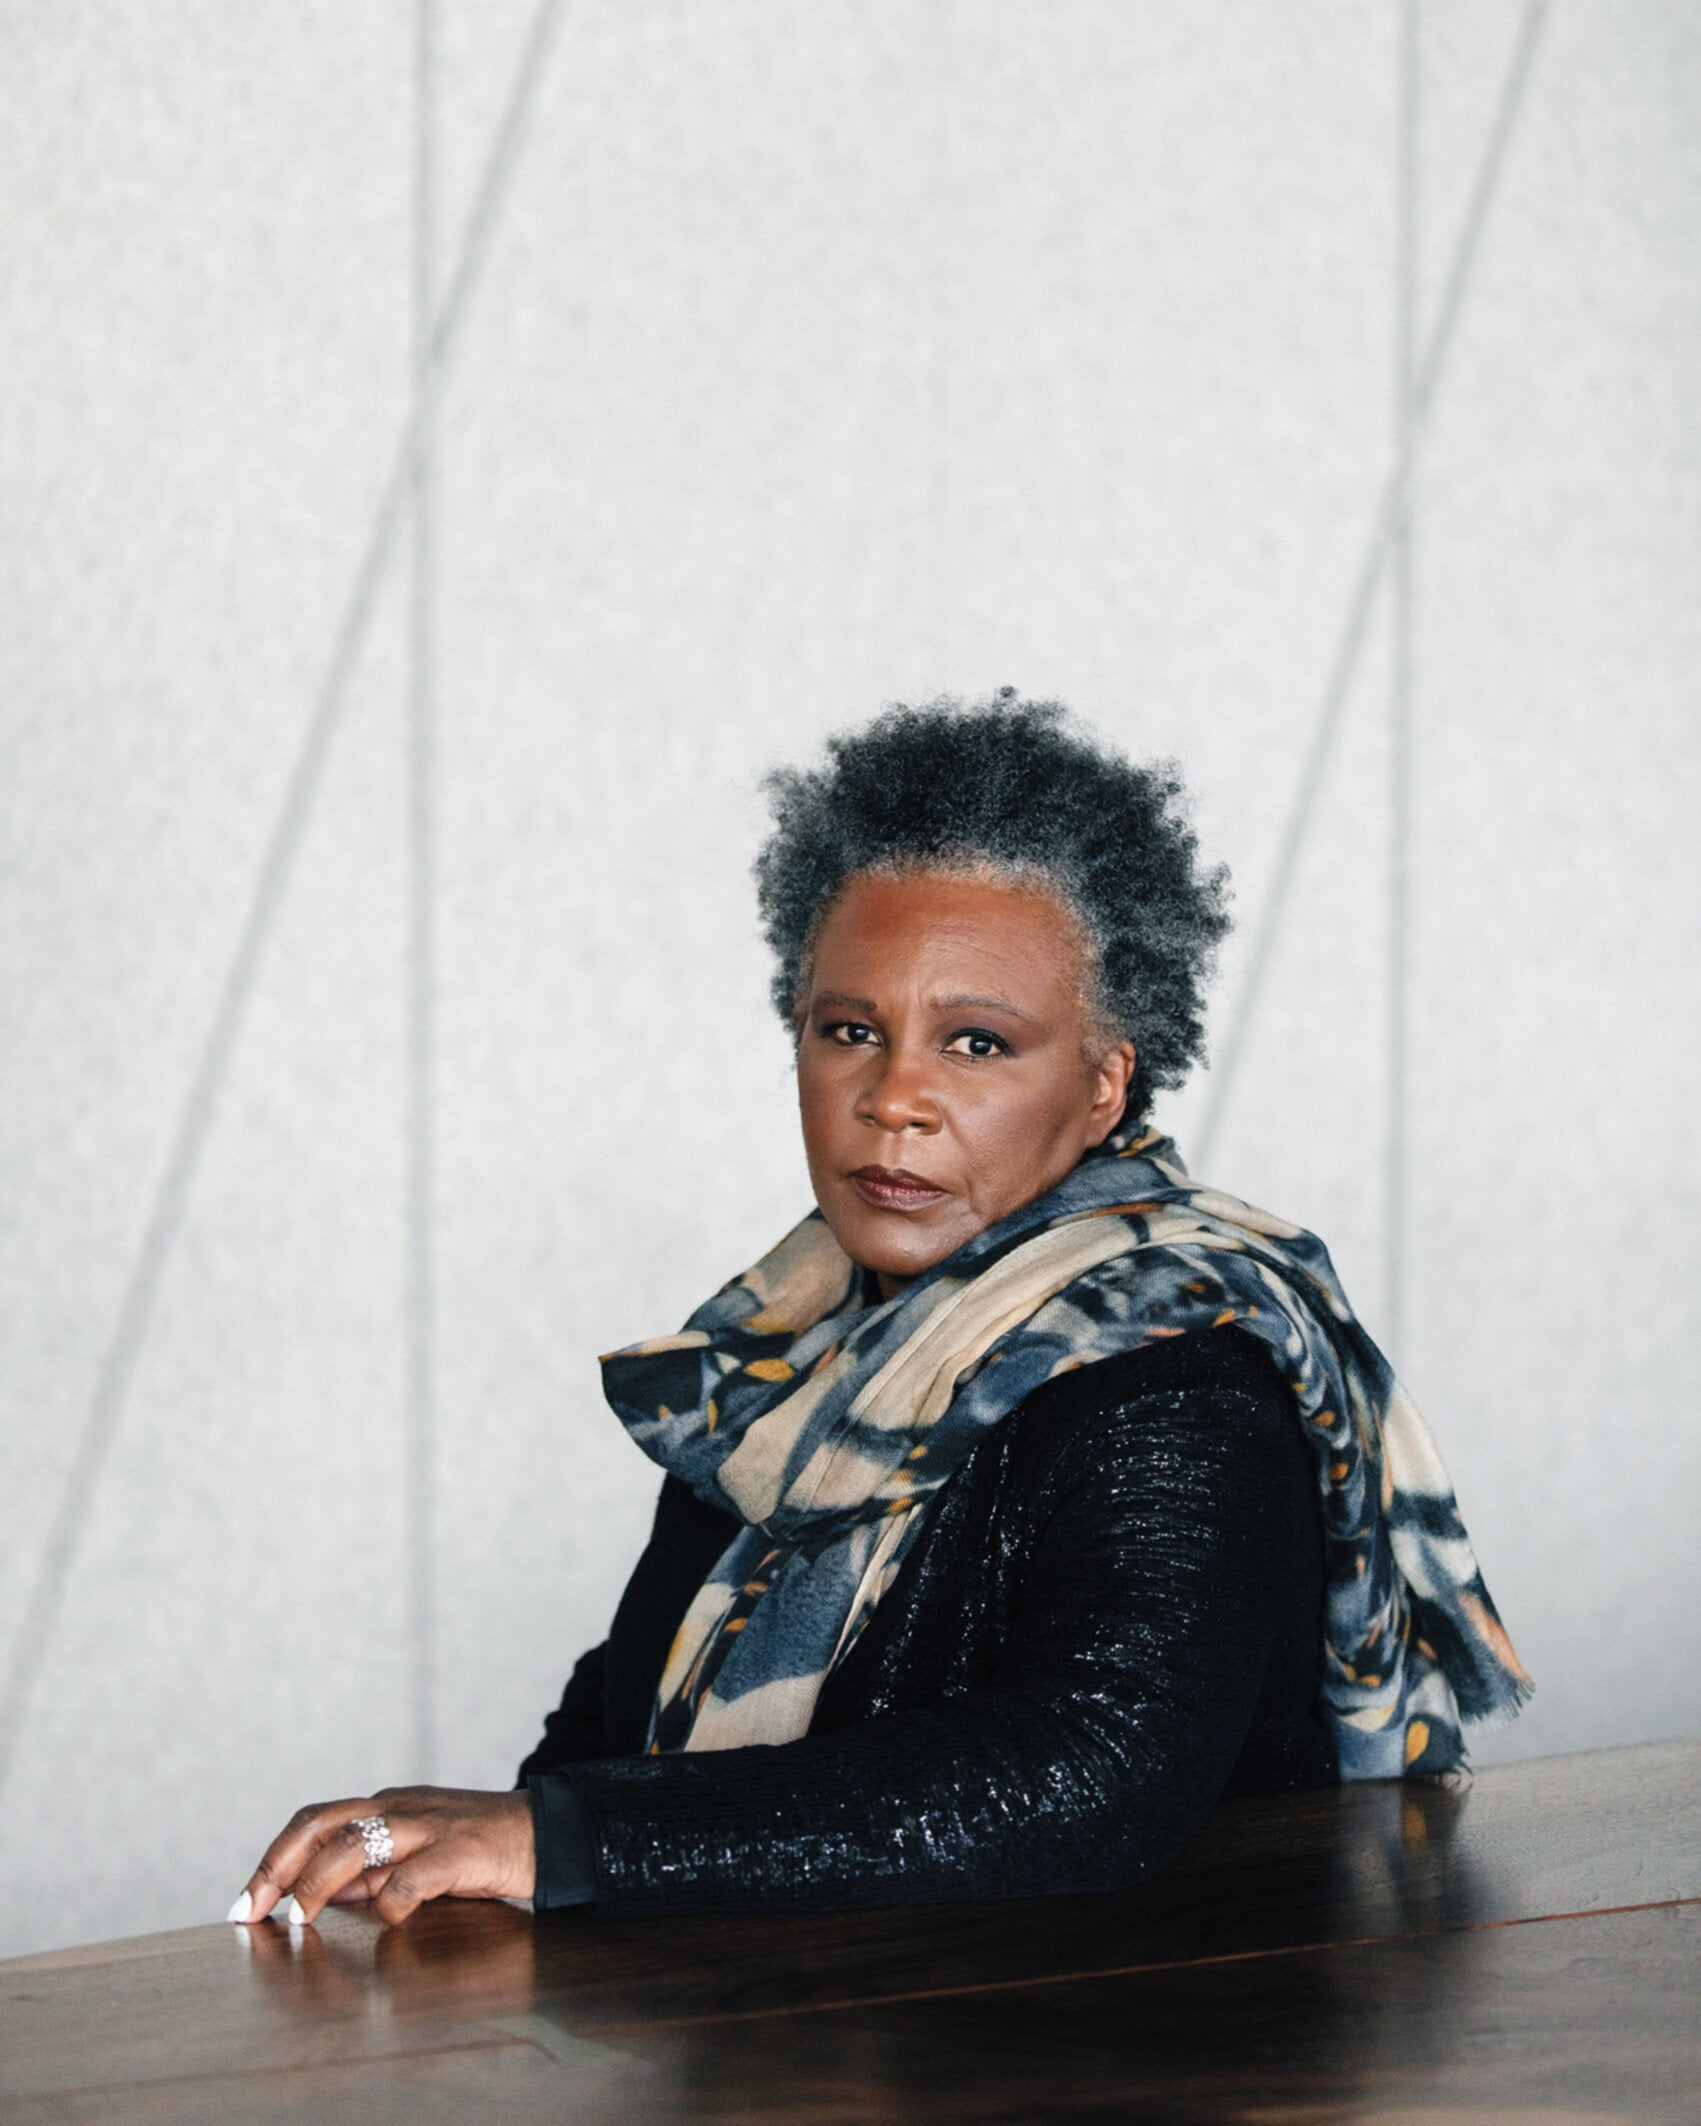 Claudia Rankine and the construction of whiteness